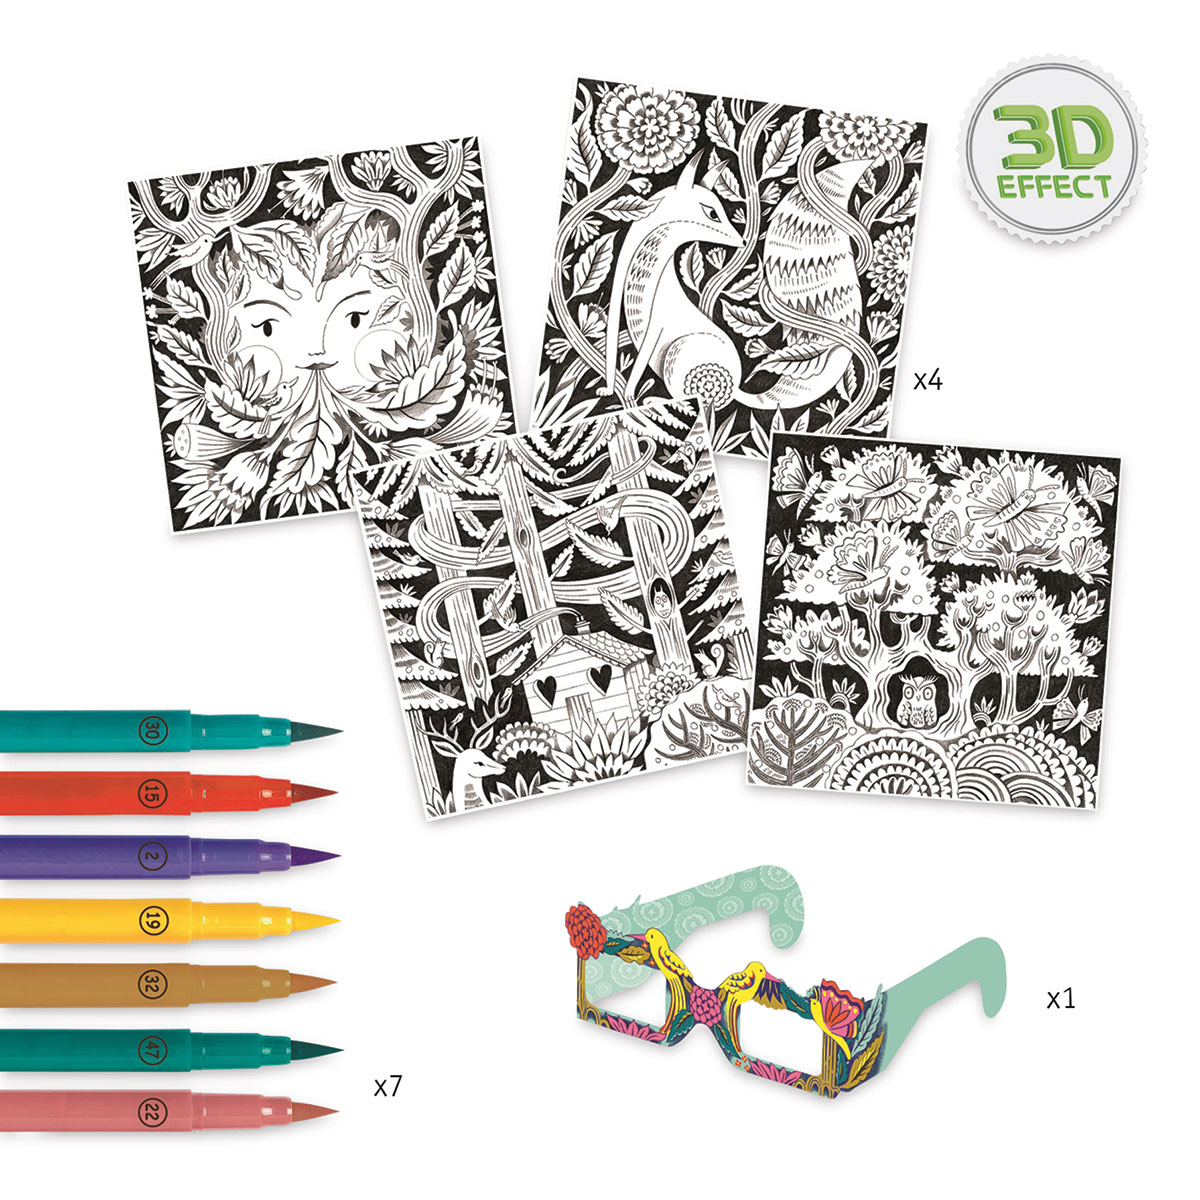 3D Colouring - Fantasy Forest